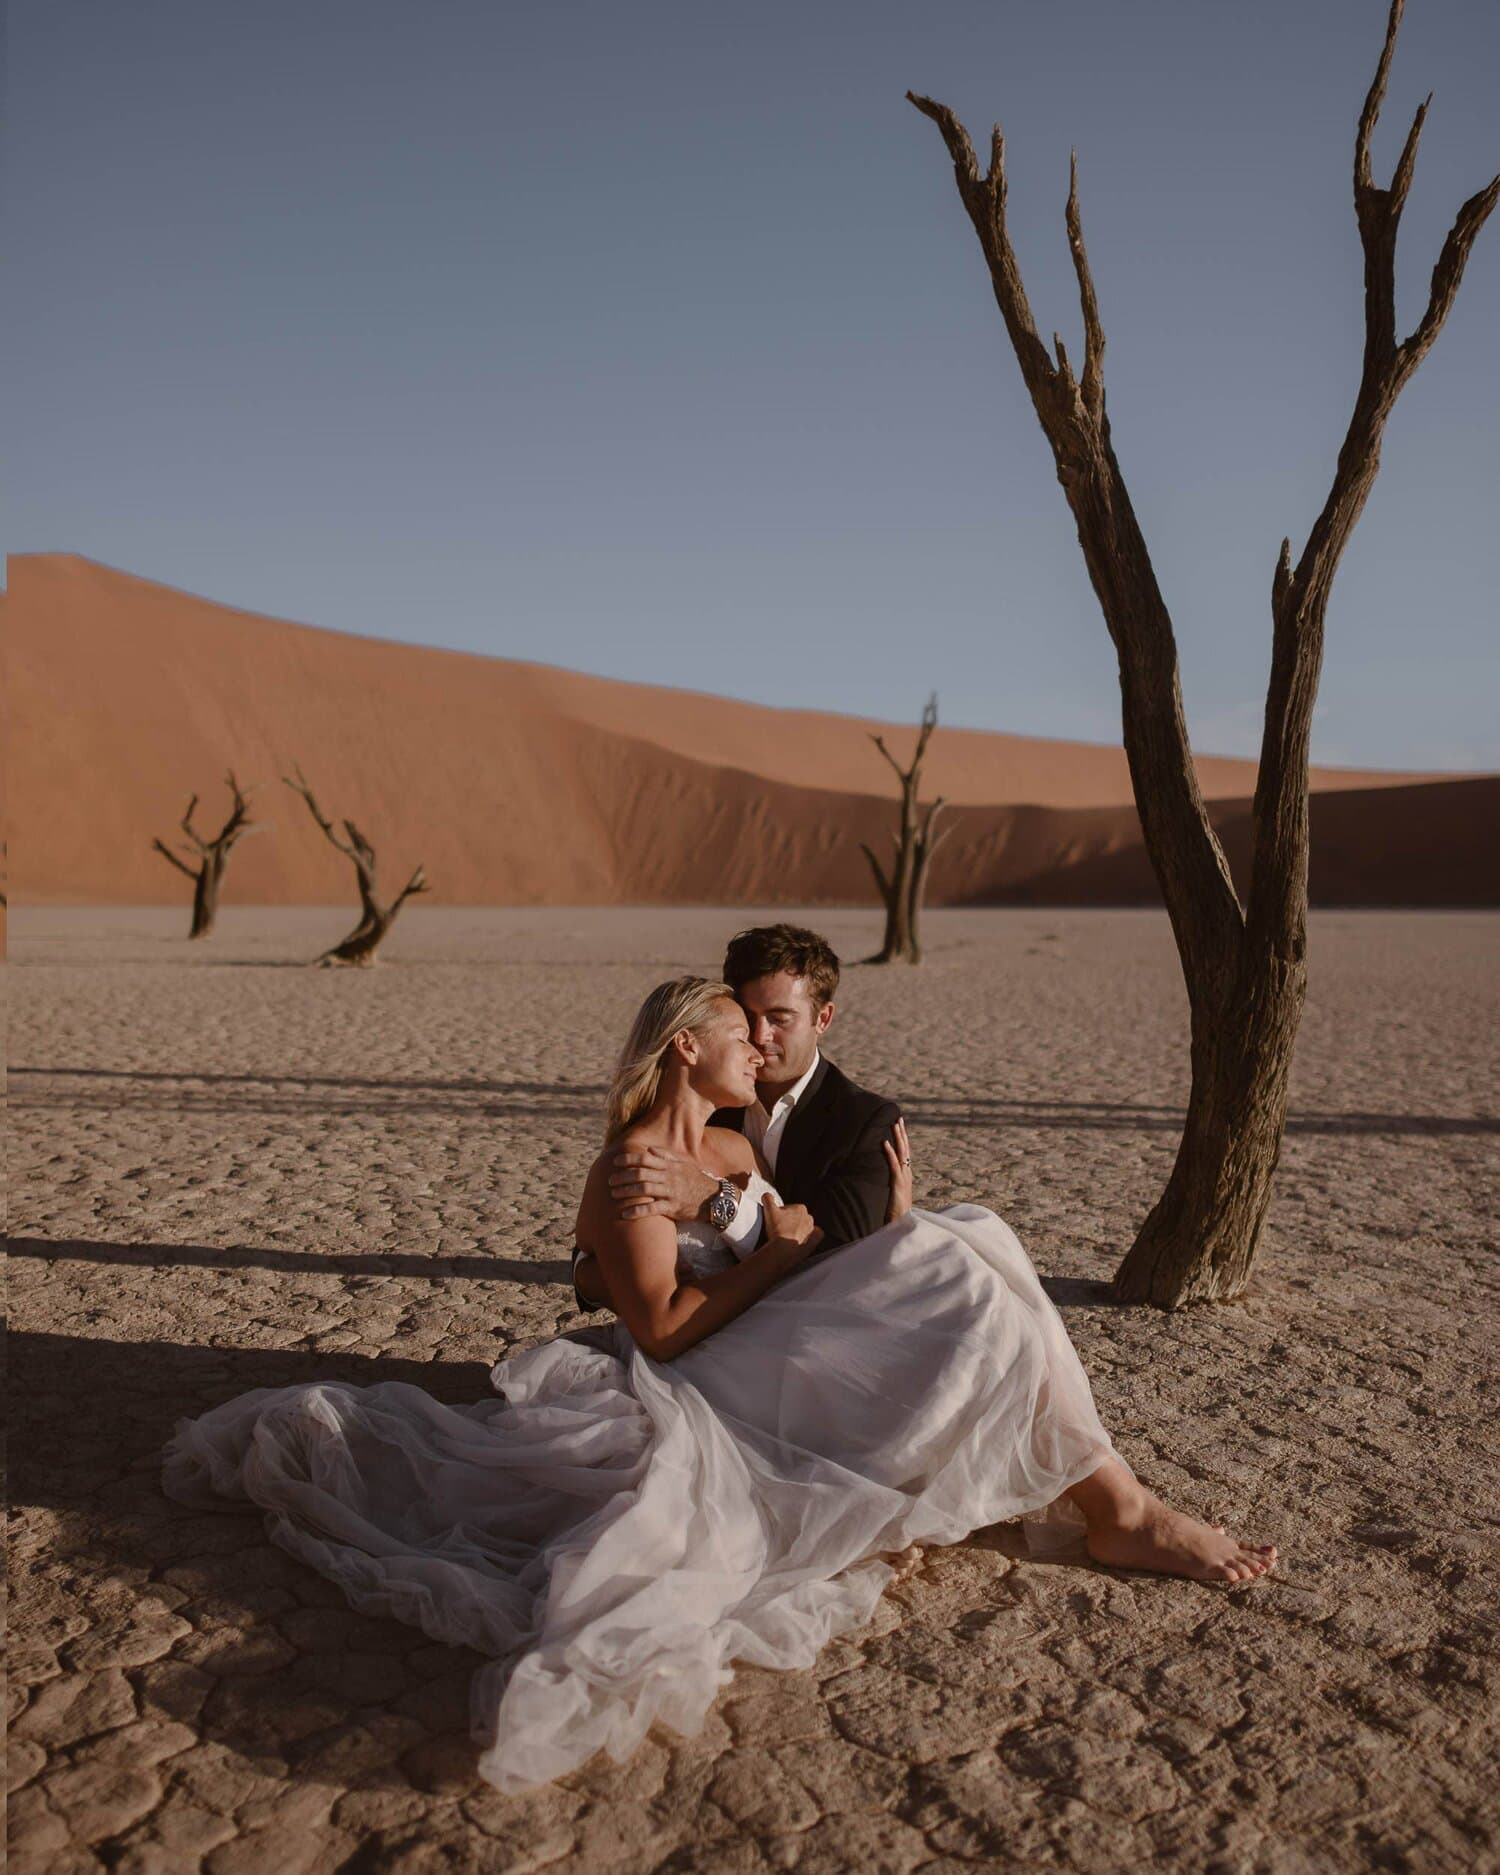 Bride and groom embrace in a desert.